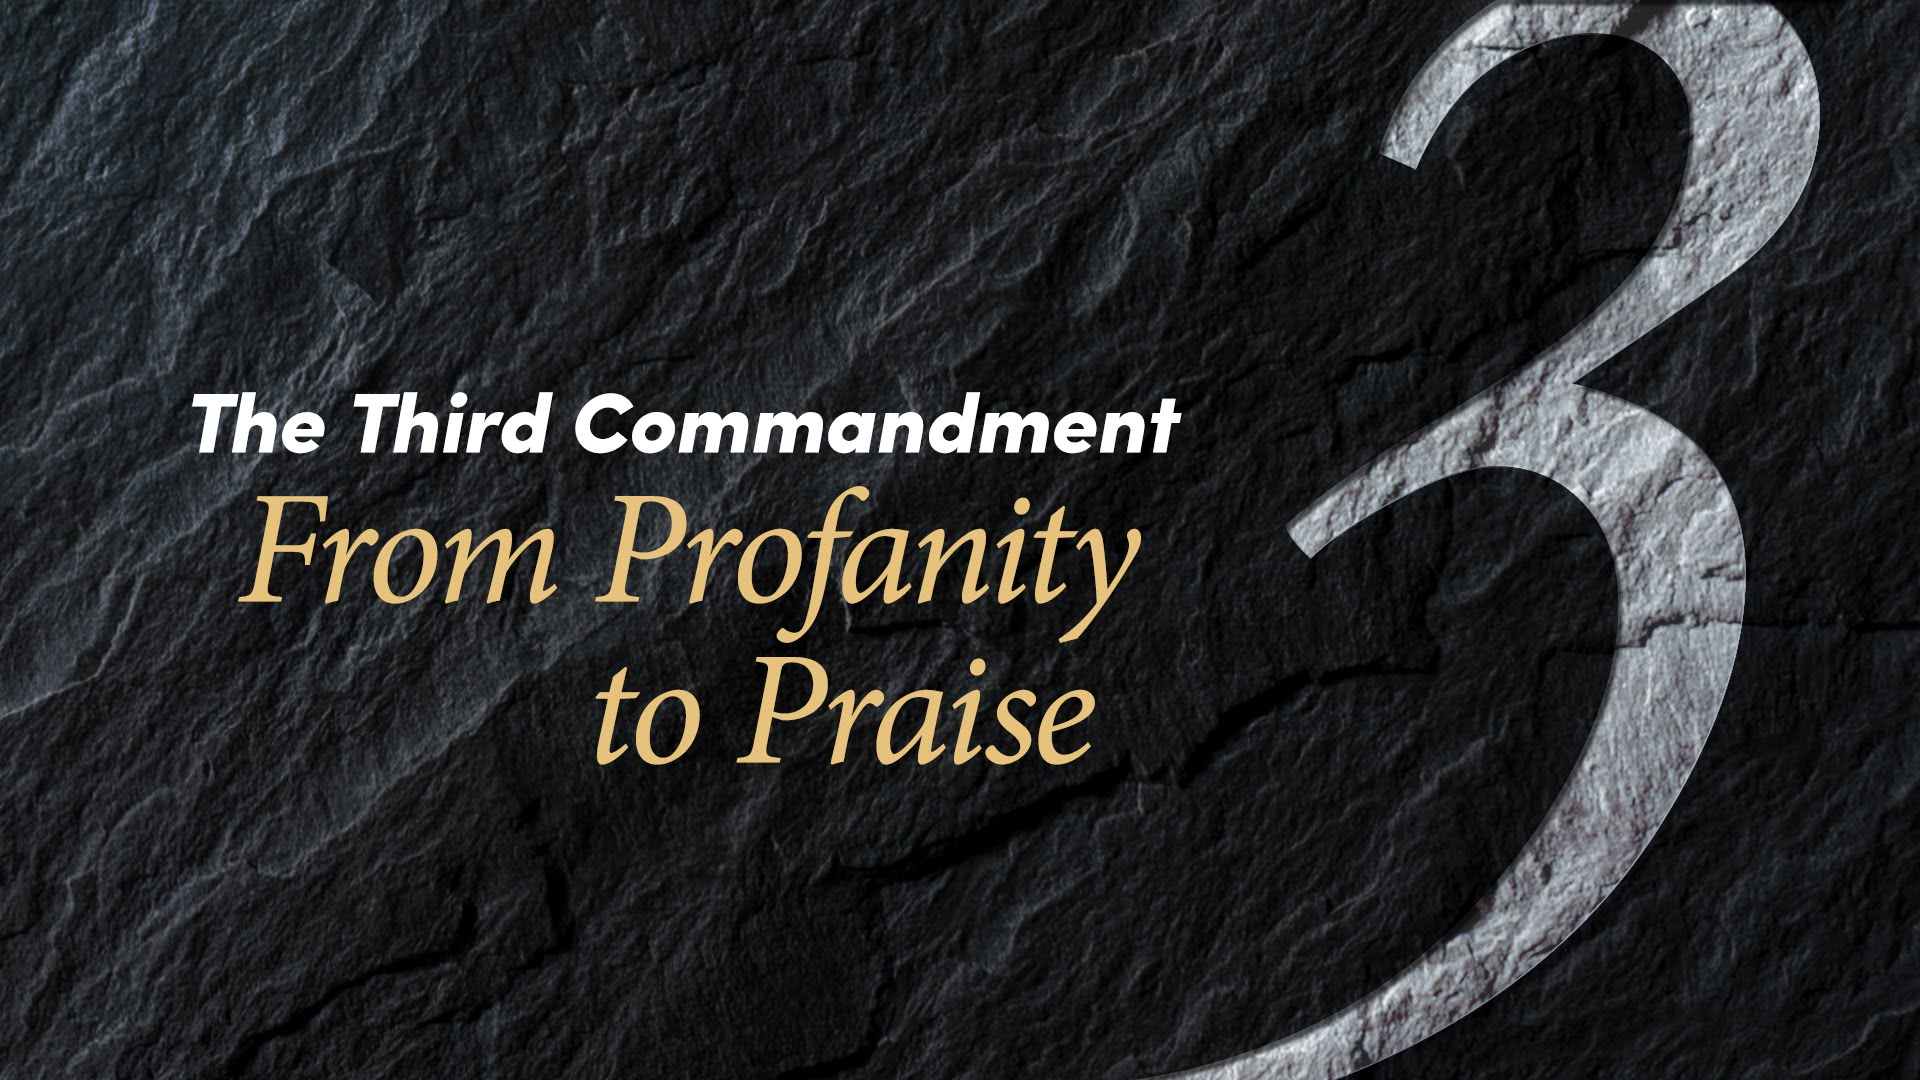 The Third Commandment: From Profanity to Praise | United Church of God